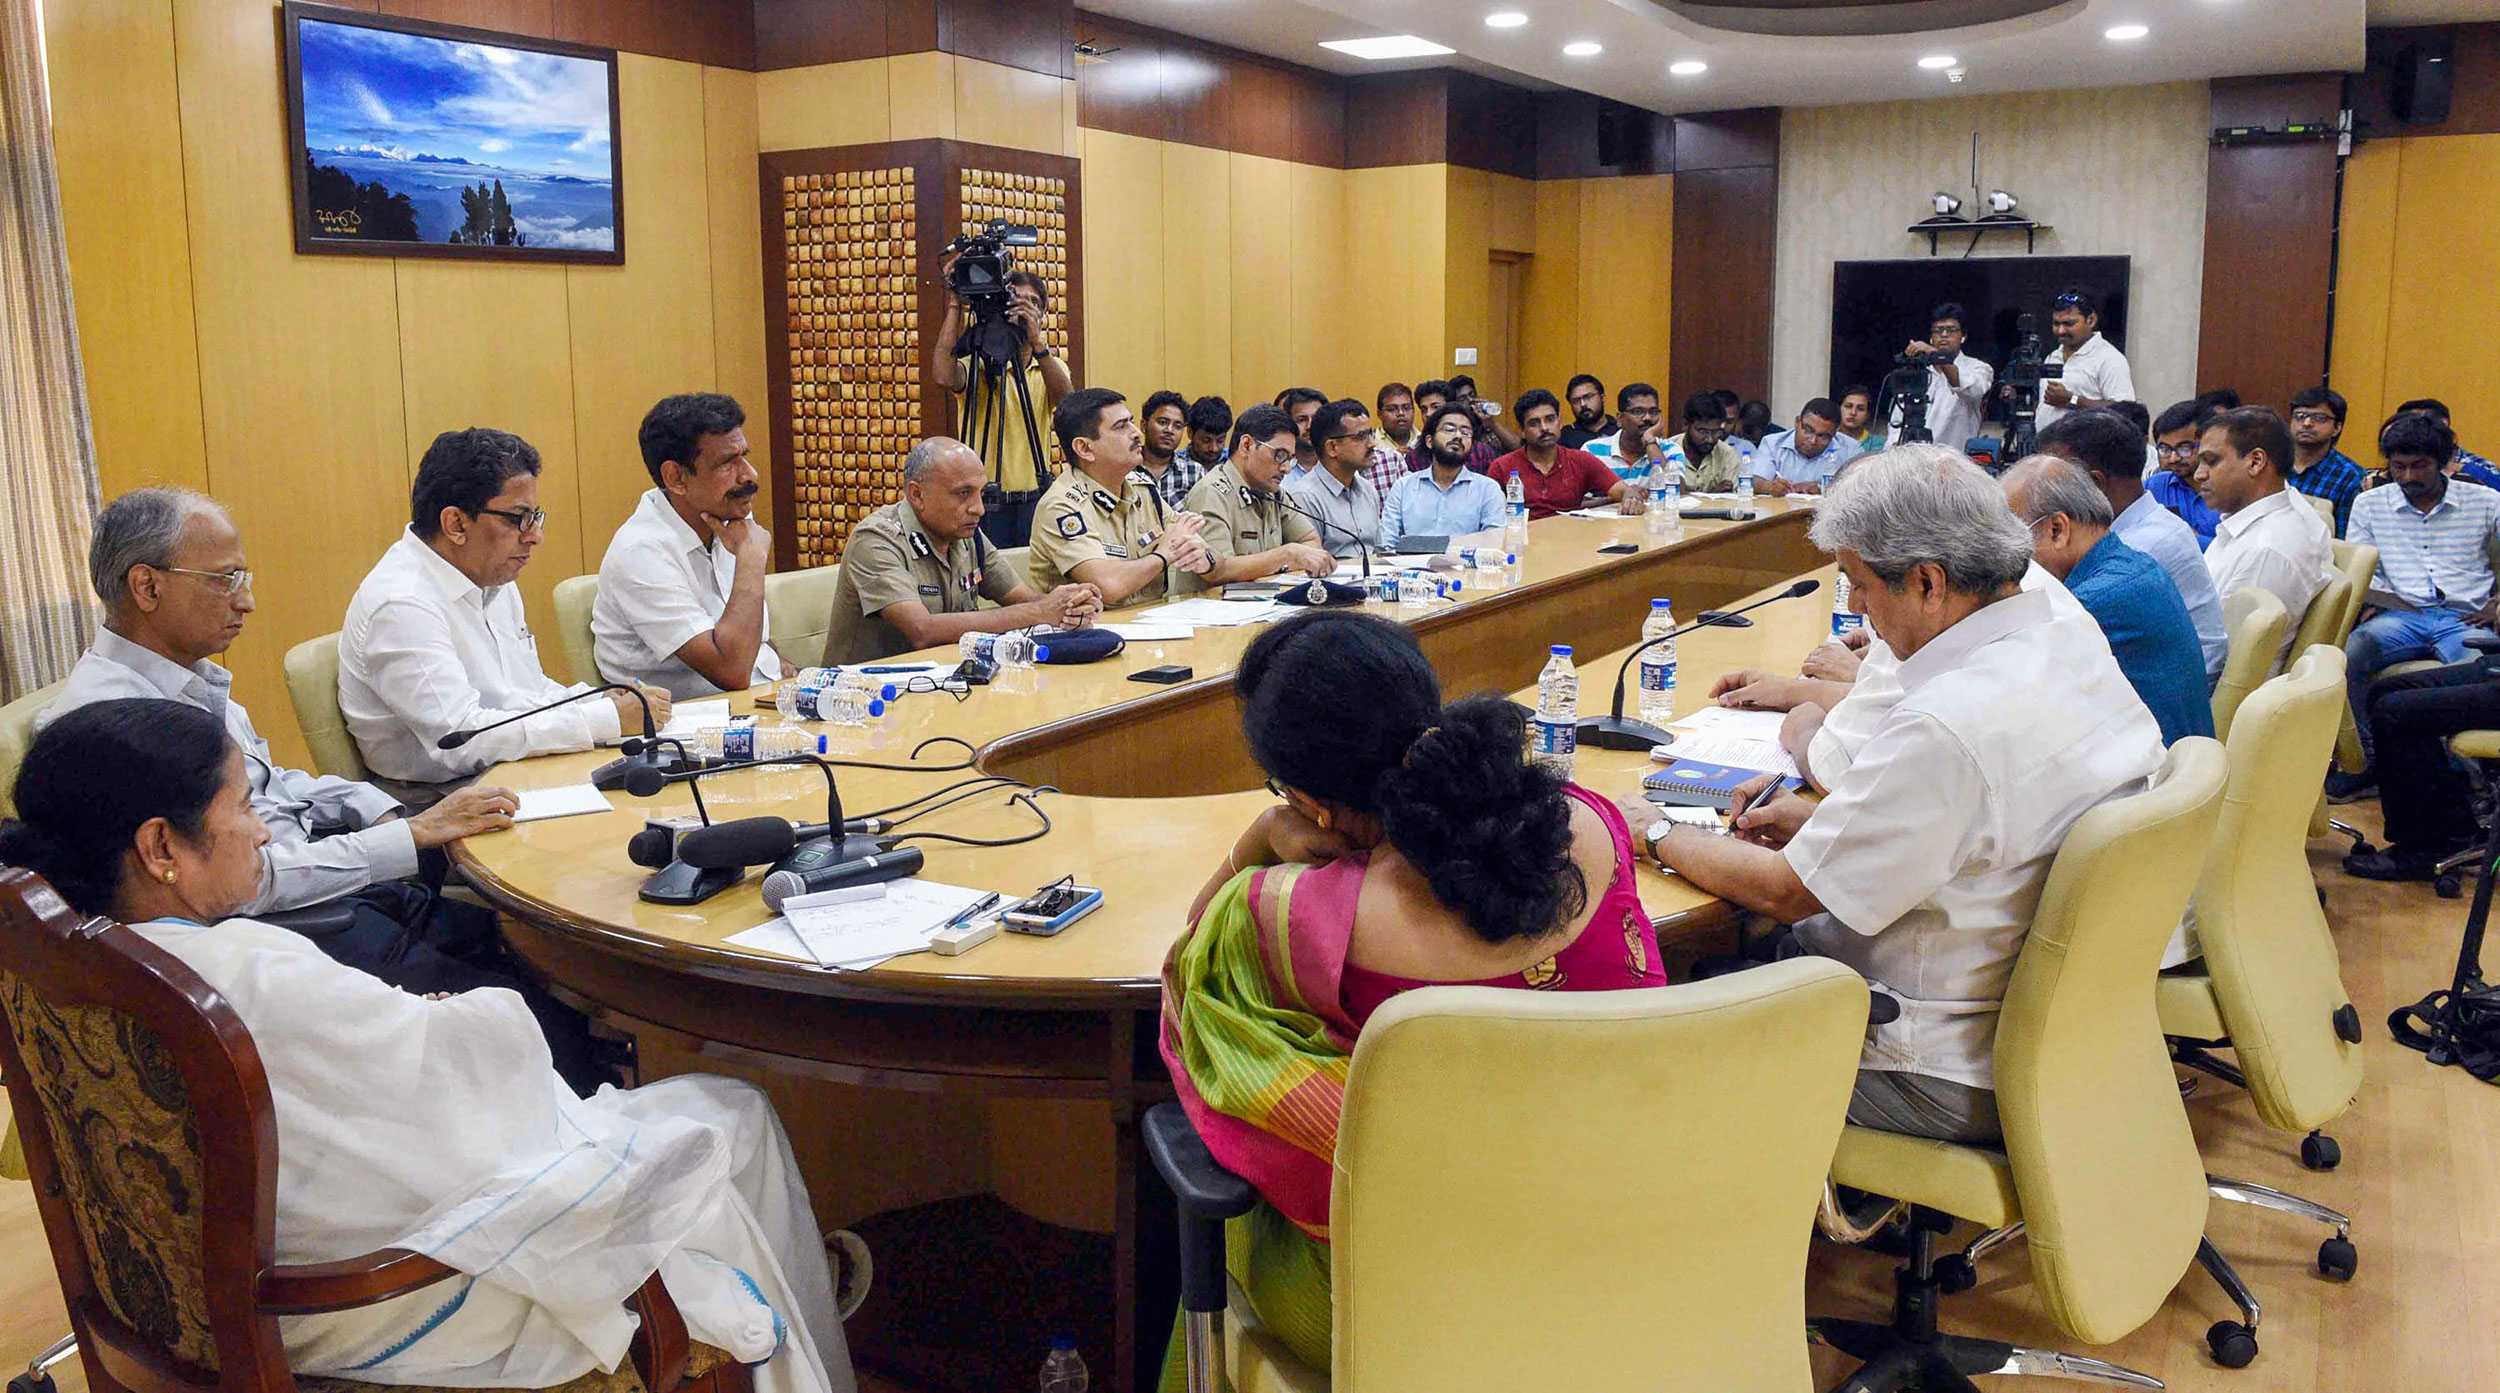 Bengal chief minister Mamata Banerjee conducts a meeting with junior doctors and officials in Howrah on June 17, 2019.